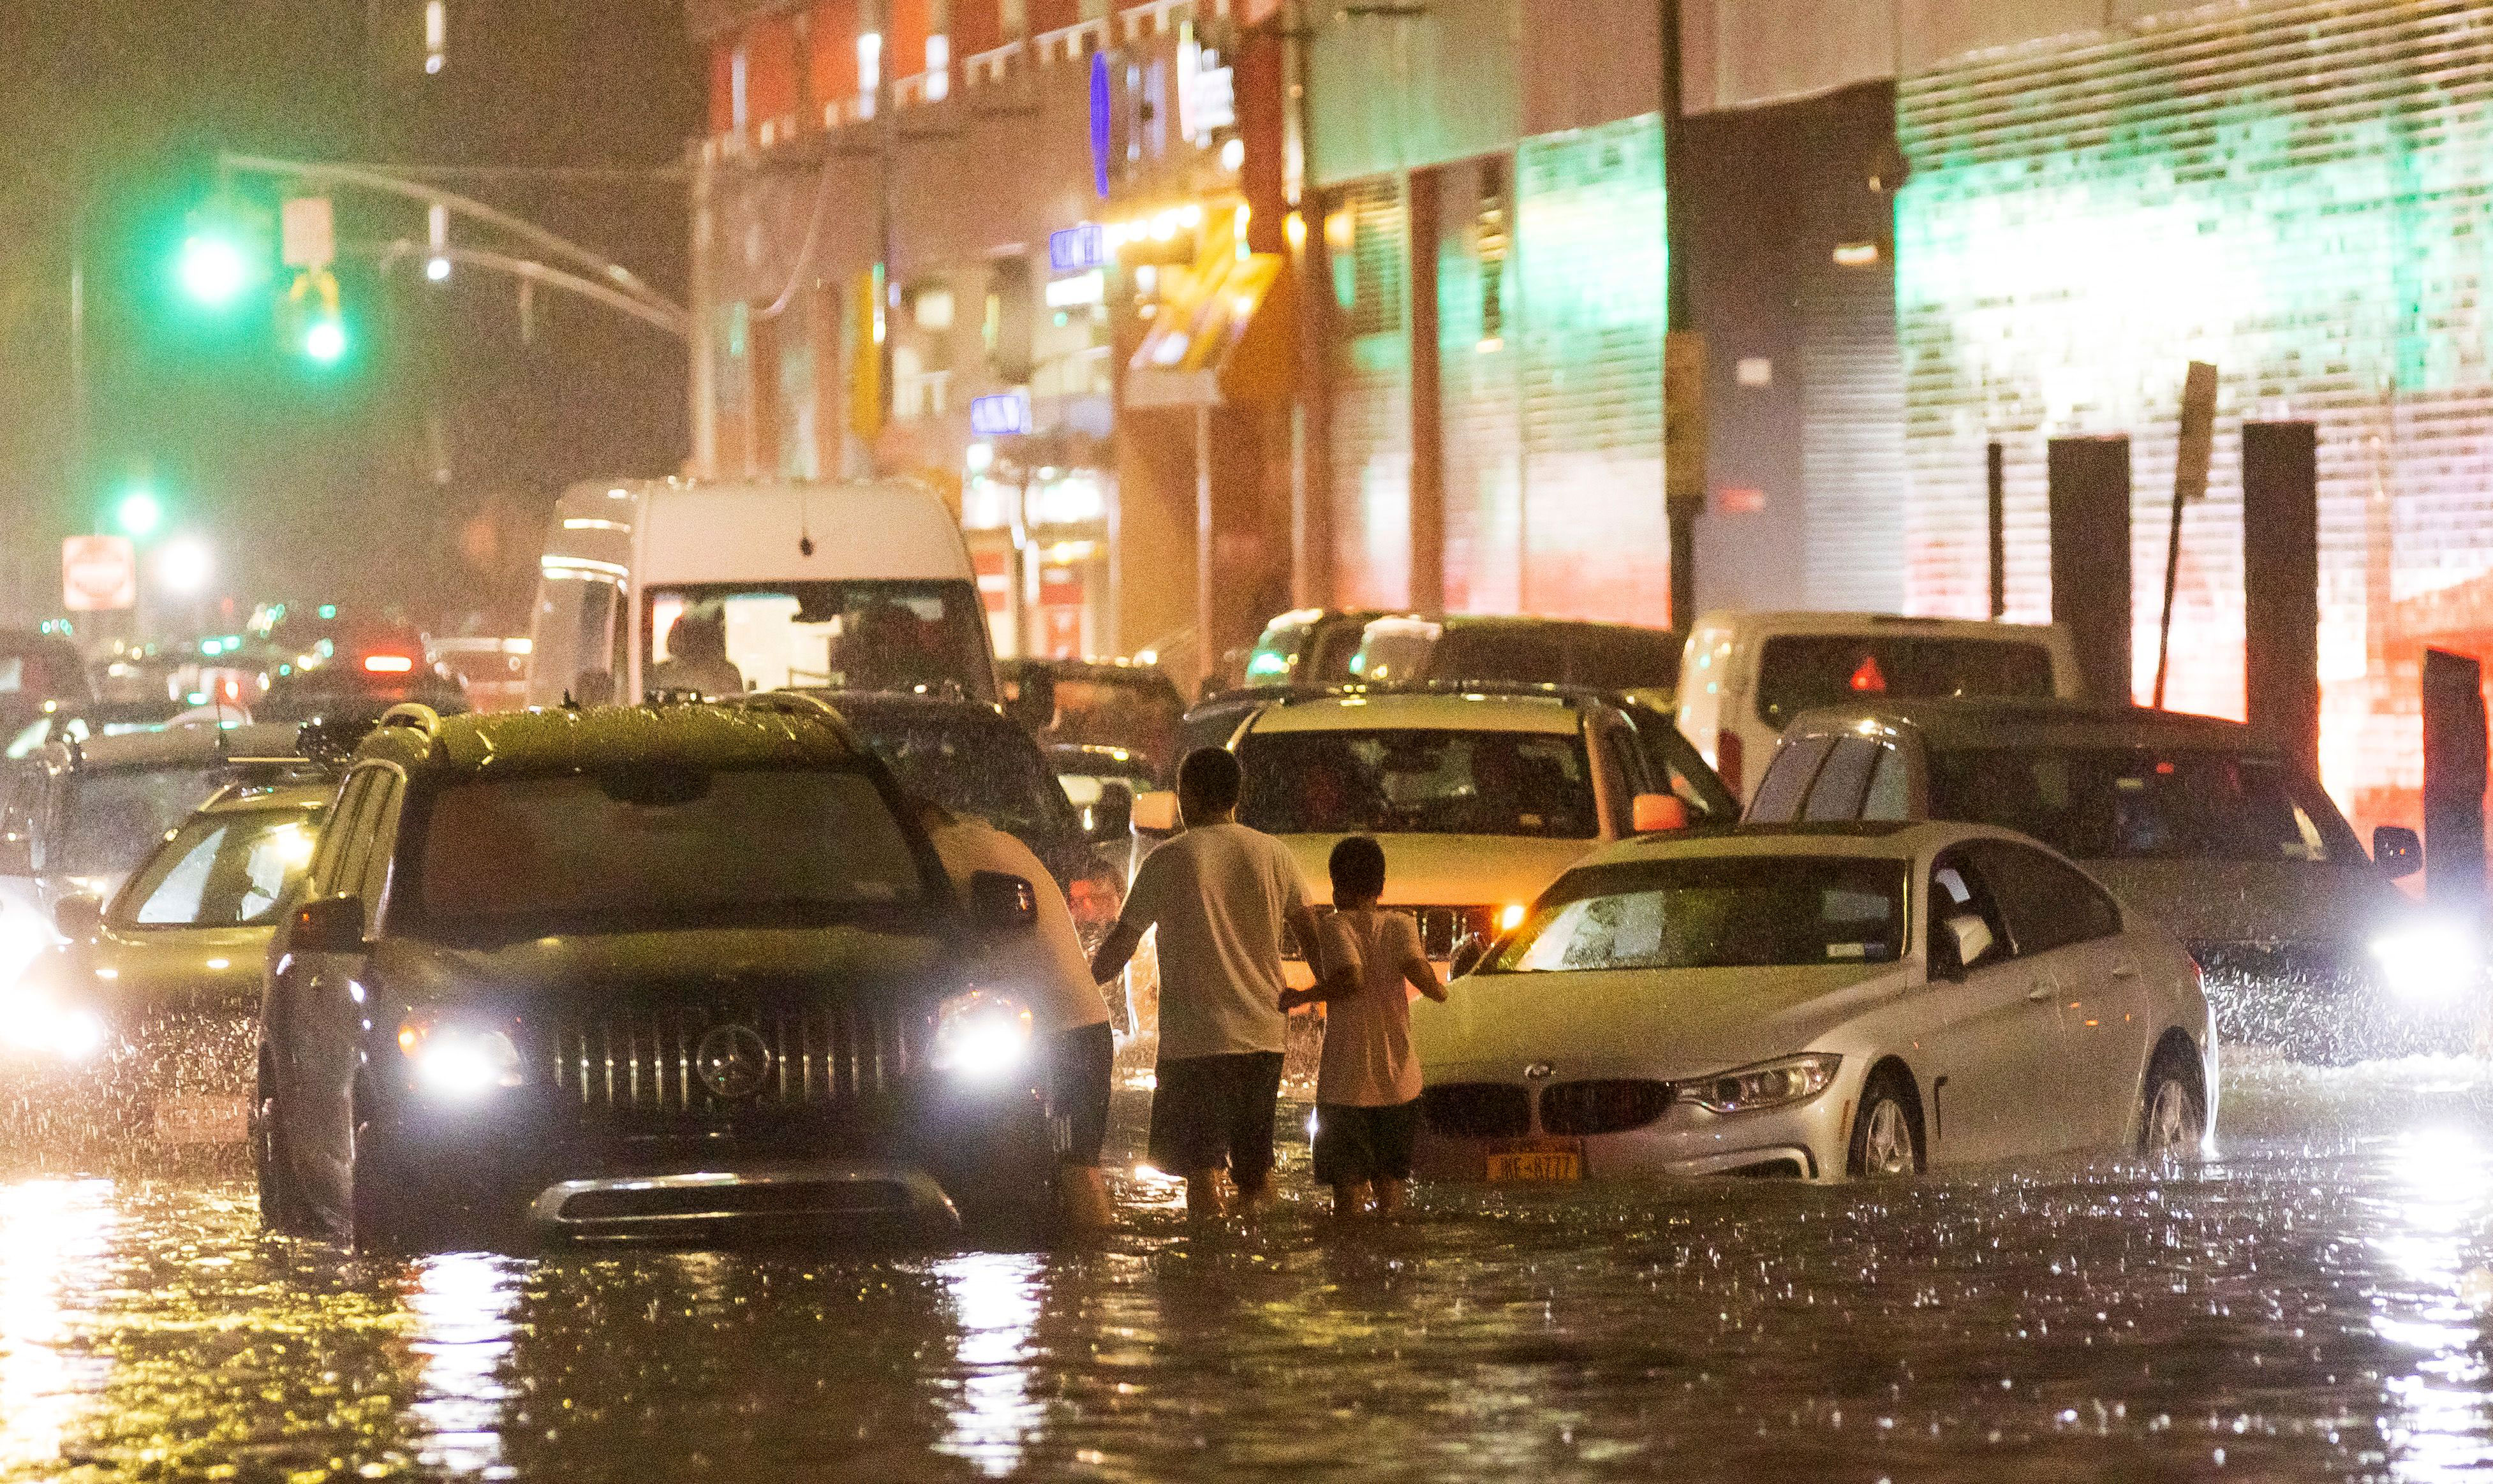 People and cars are on a street flooded by heavy rain in Queens, New York, on September 1.